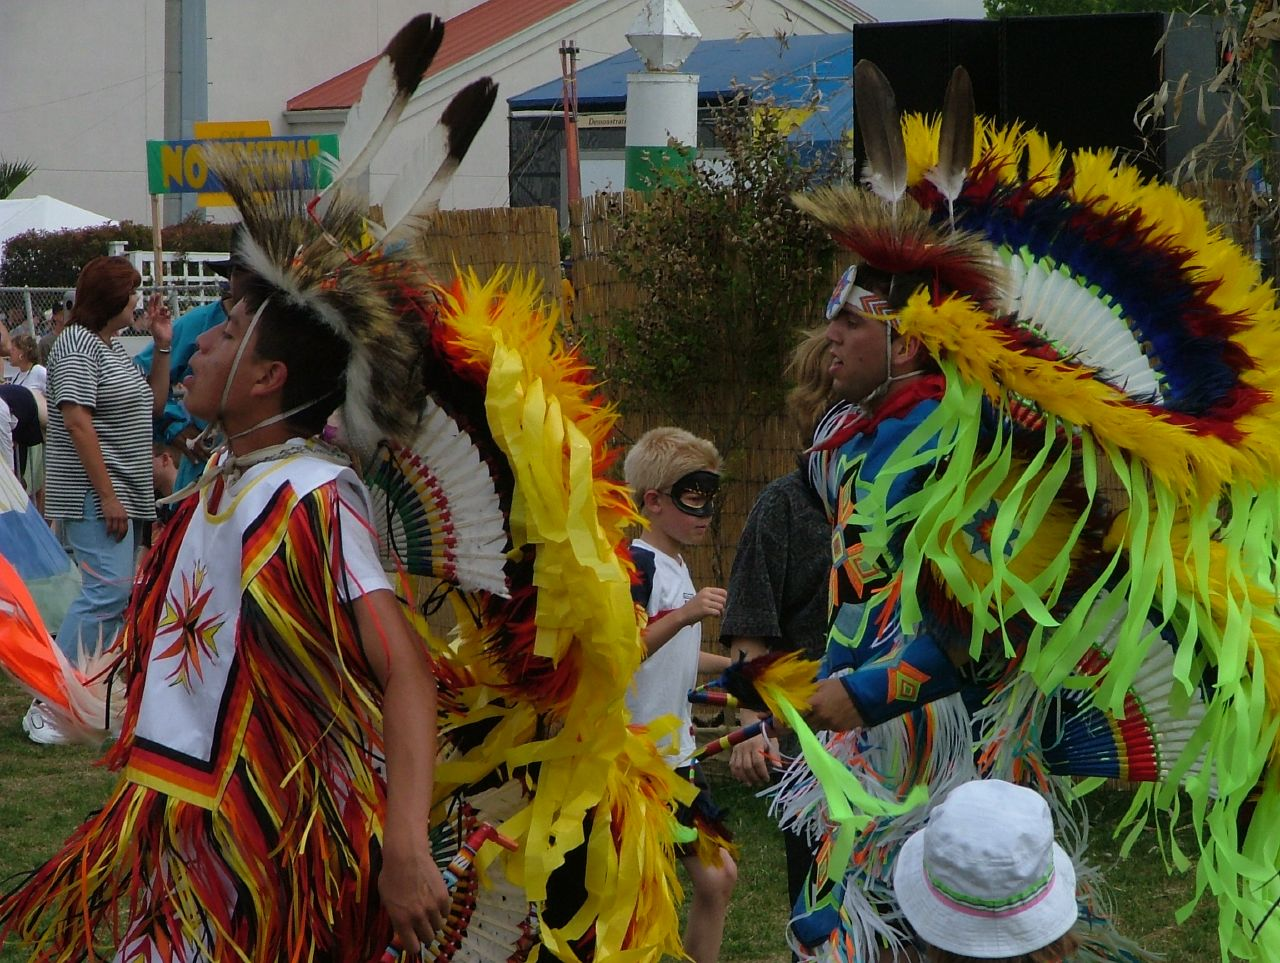 No Jazz Fest >> File No Jazzfest 2004 Amerind Dancers Jpg Wikimedia Commons